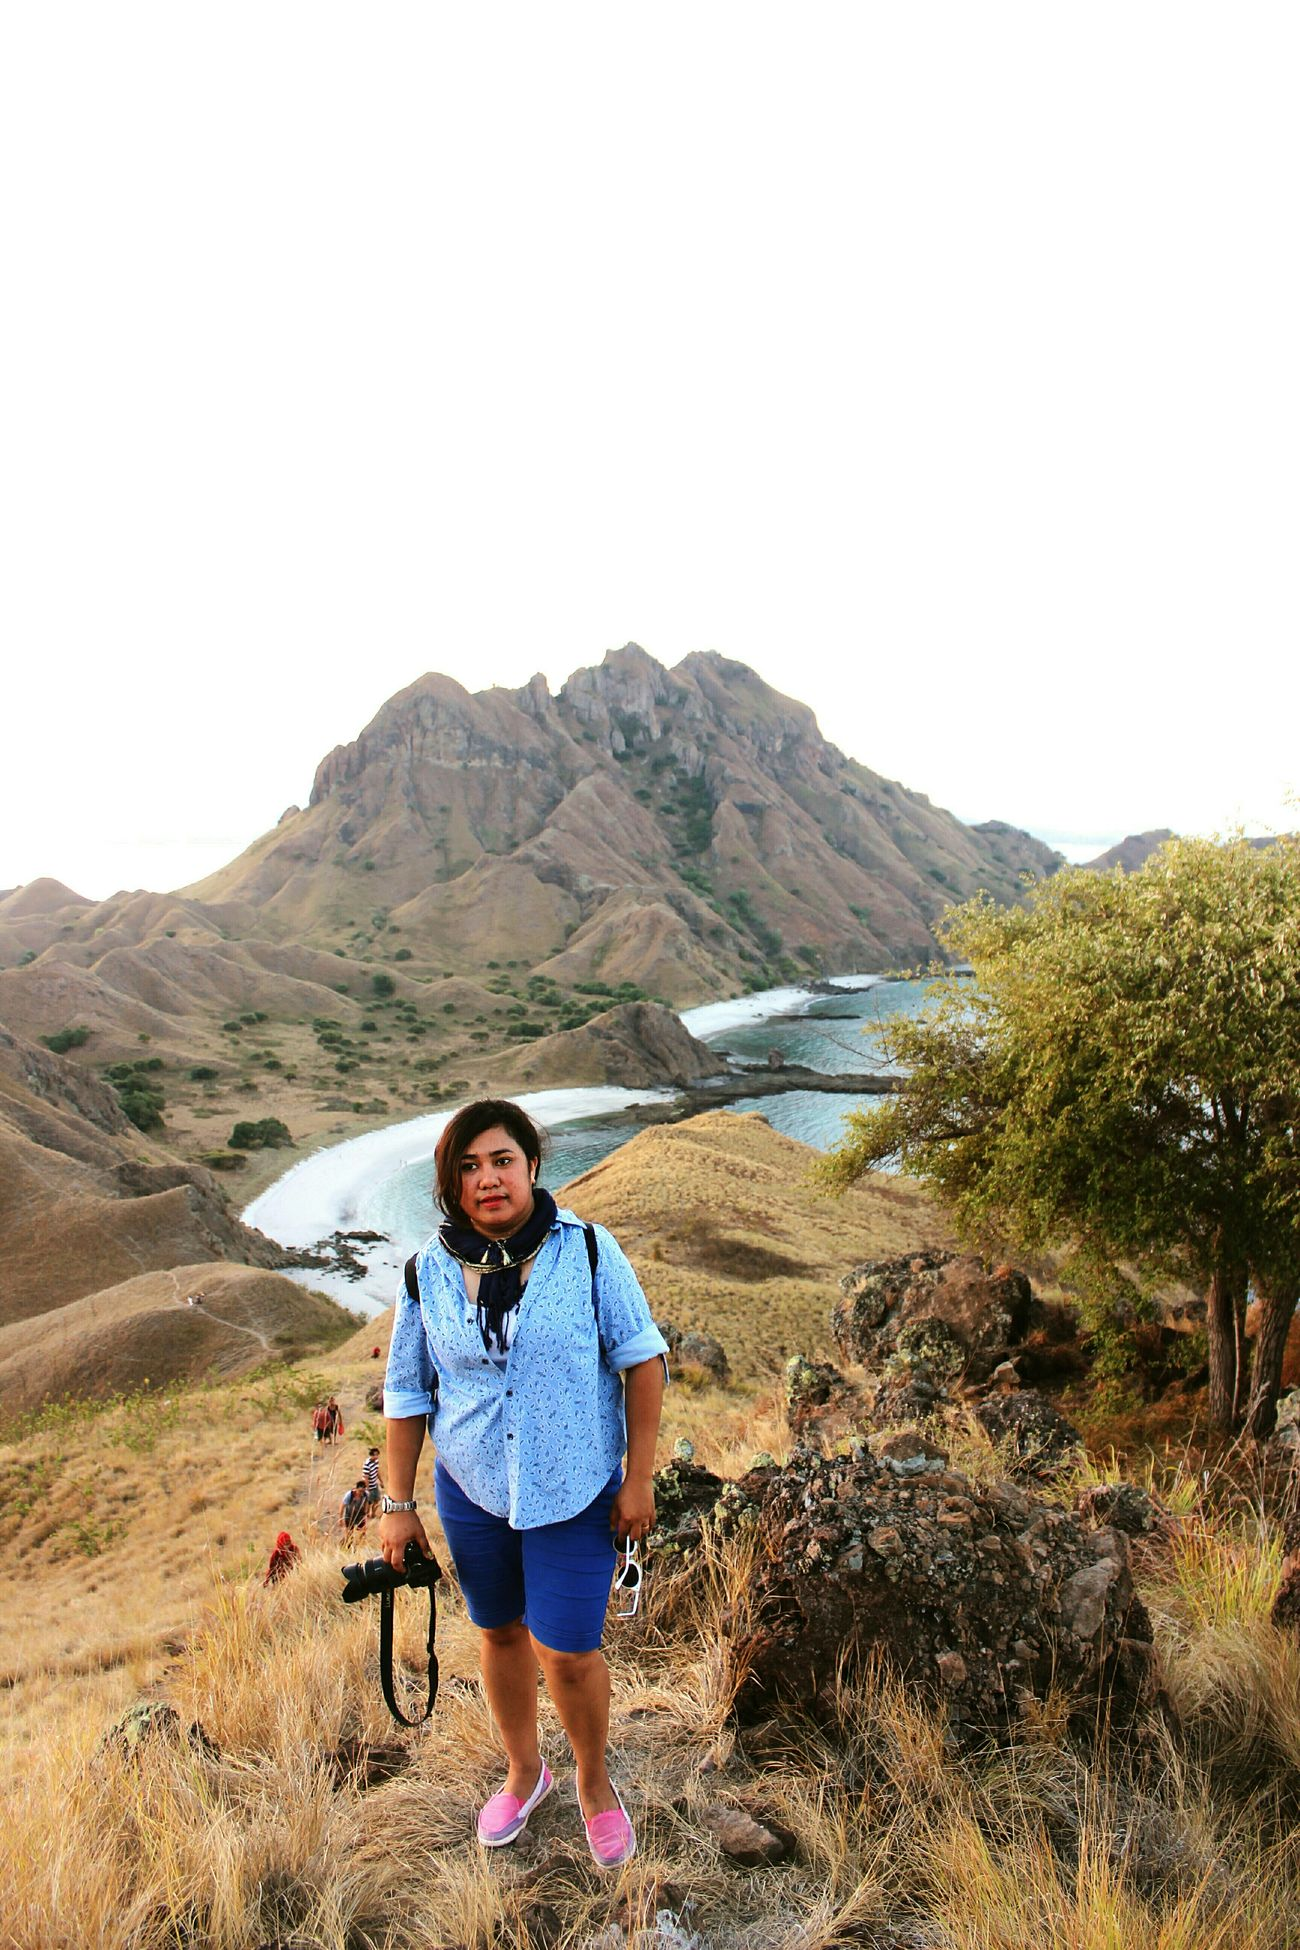 Travelling Adventure Padar Island Labuanbajo Flores INDONESIA Amazing Place